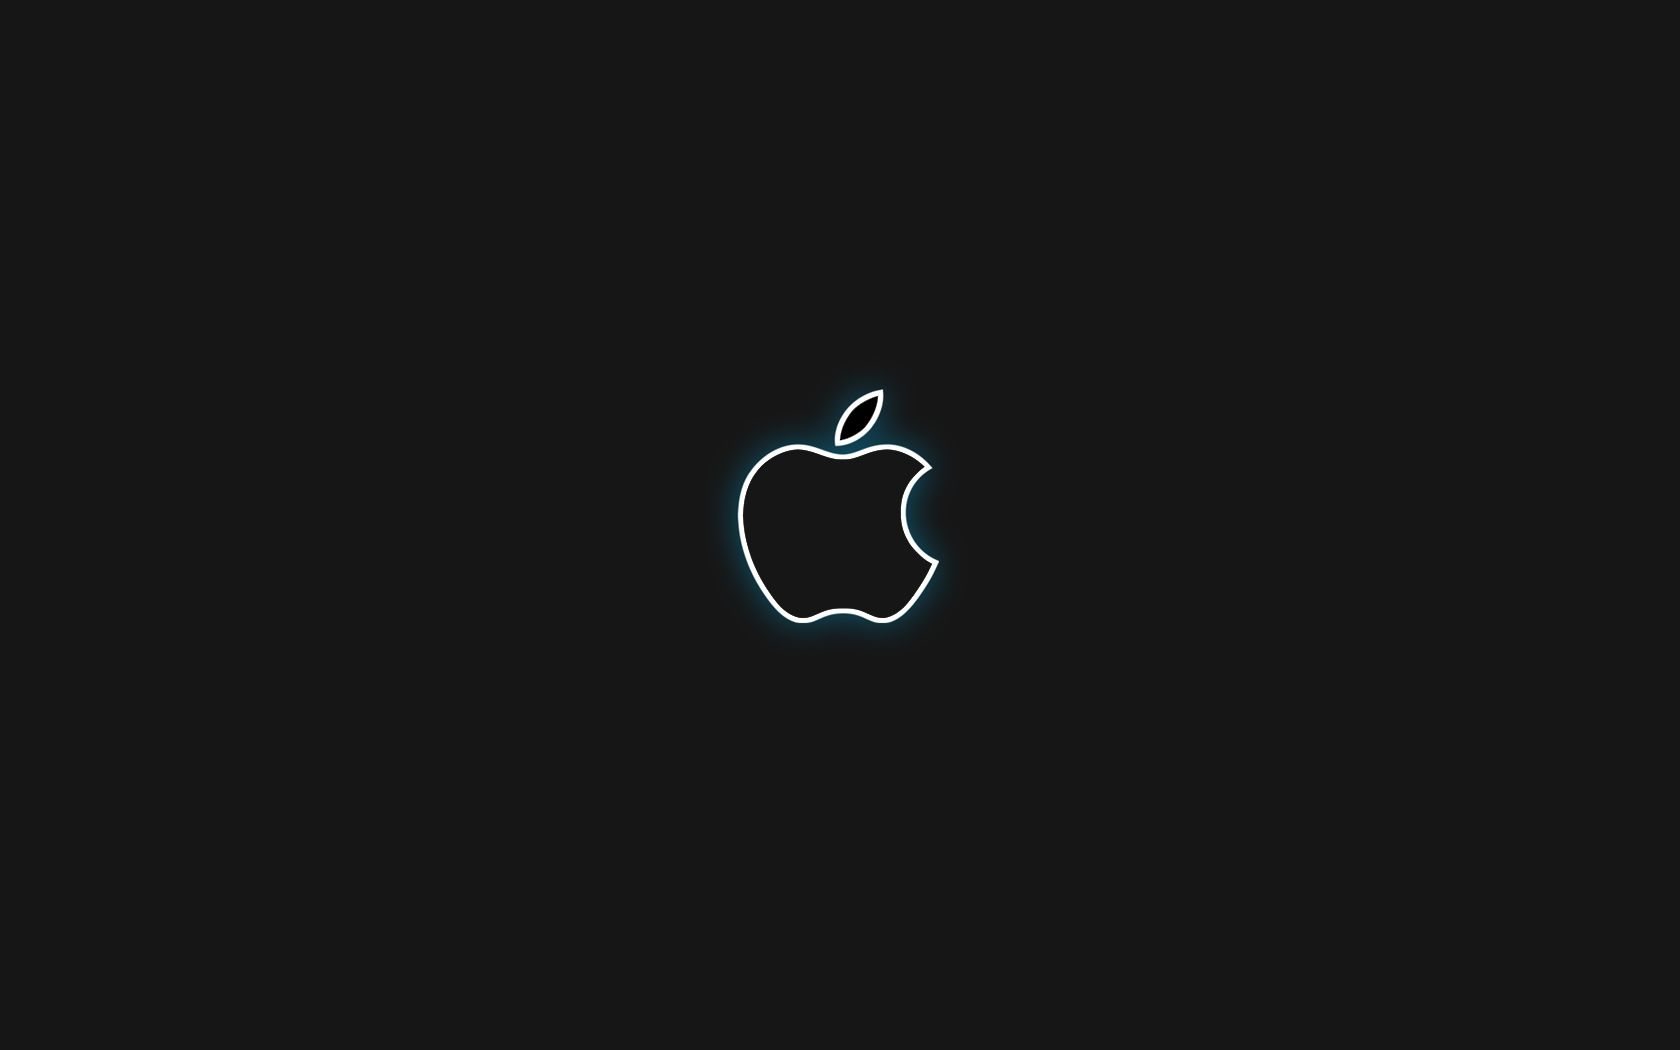 view source image | ipad pro & others wallpaper! | pinterest | apple